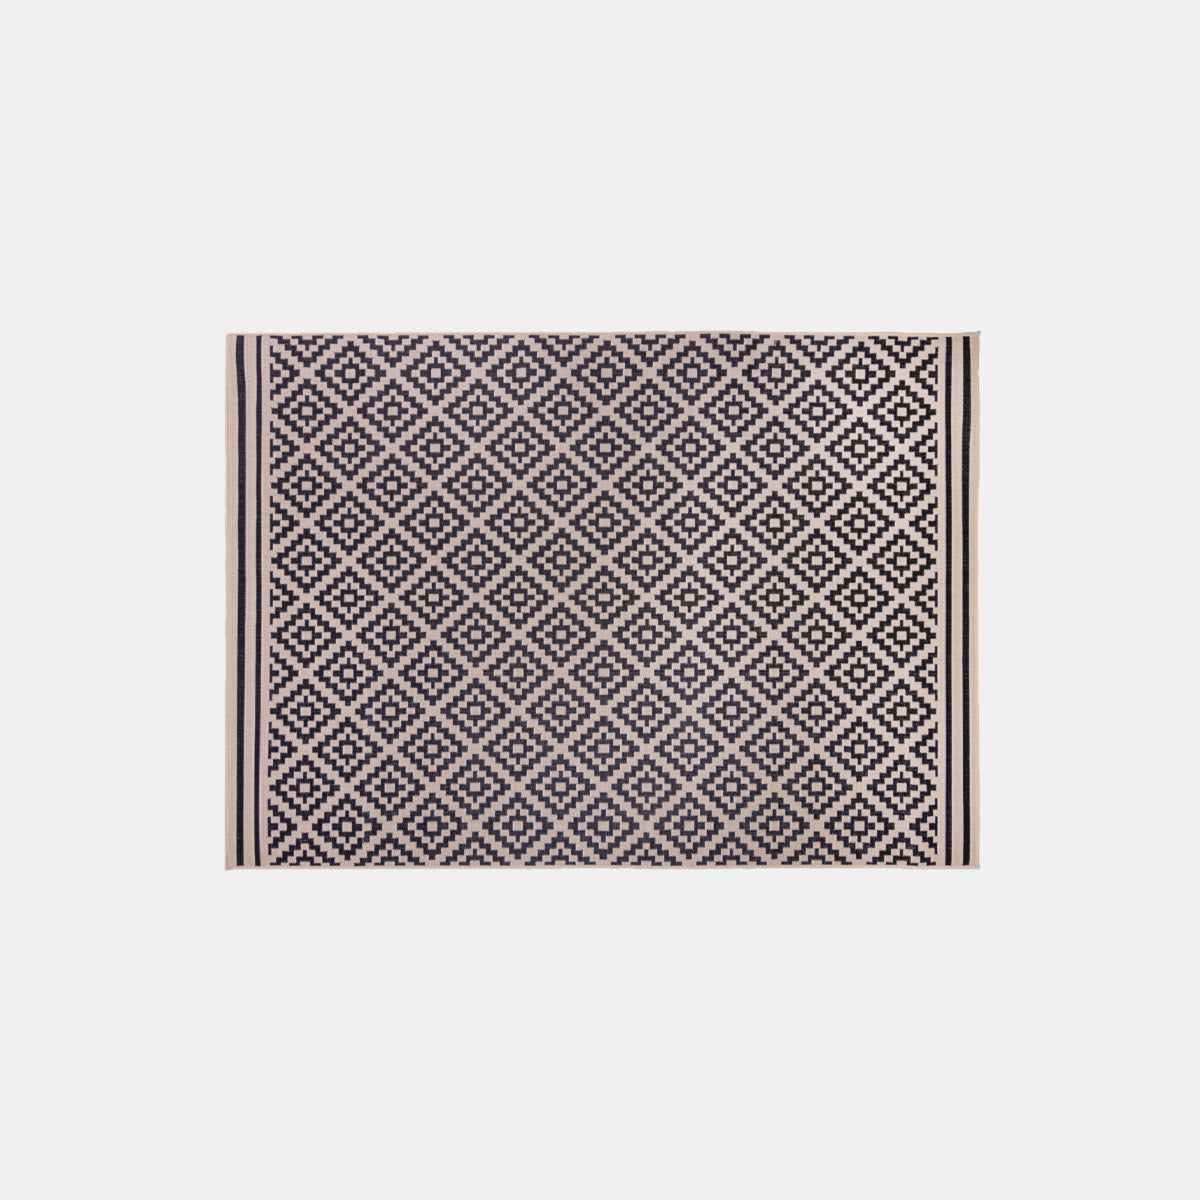 kentucky rug indoor outdoor polypropolene geometric modern design (banner image)